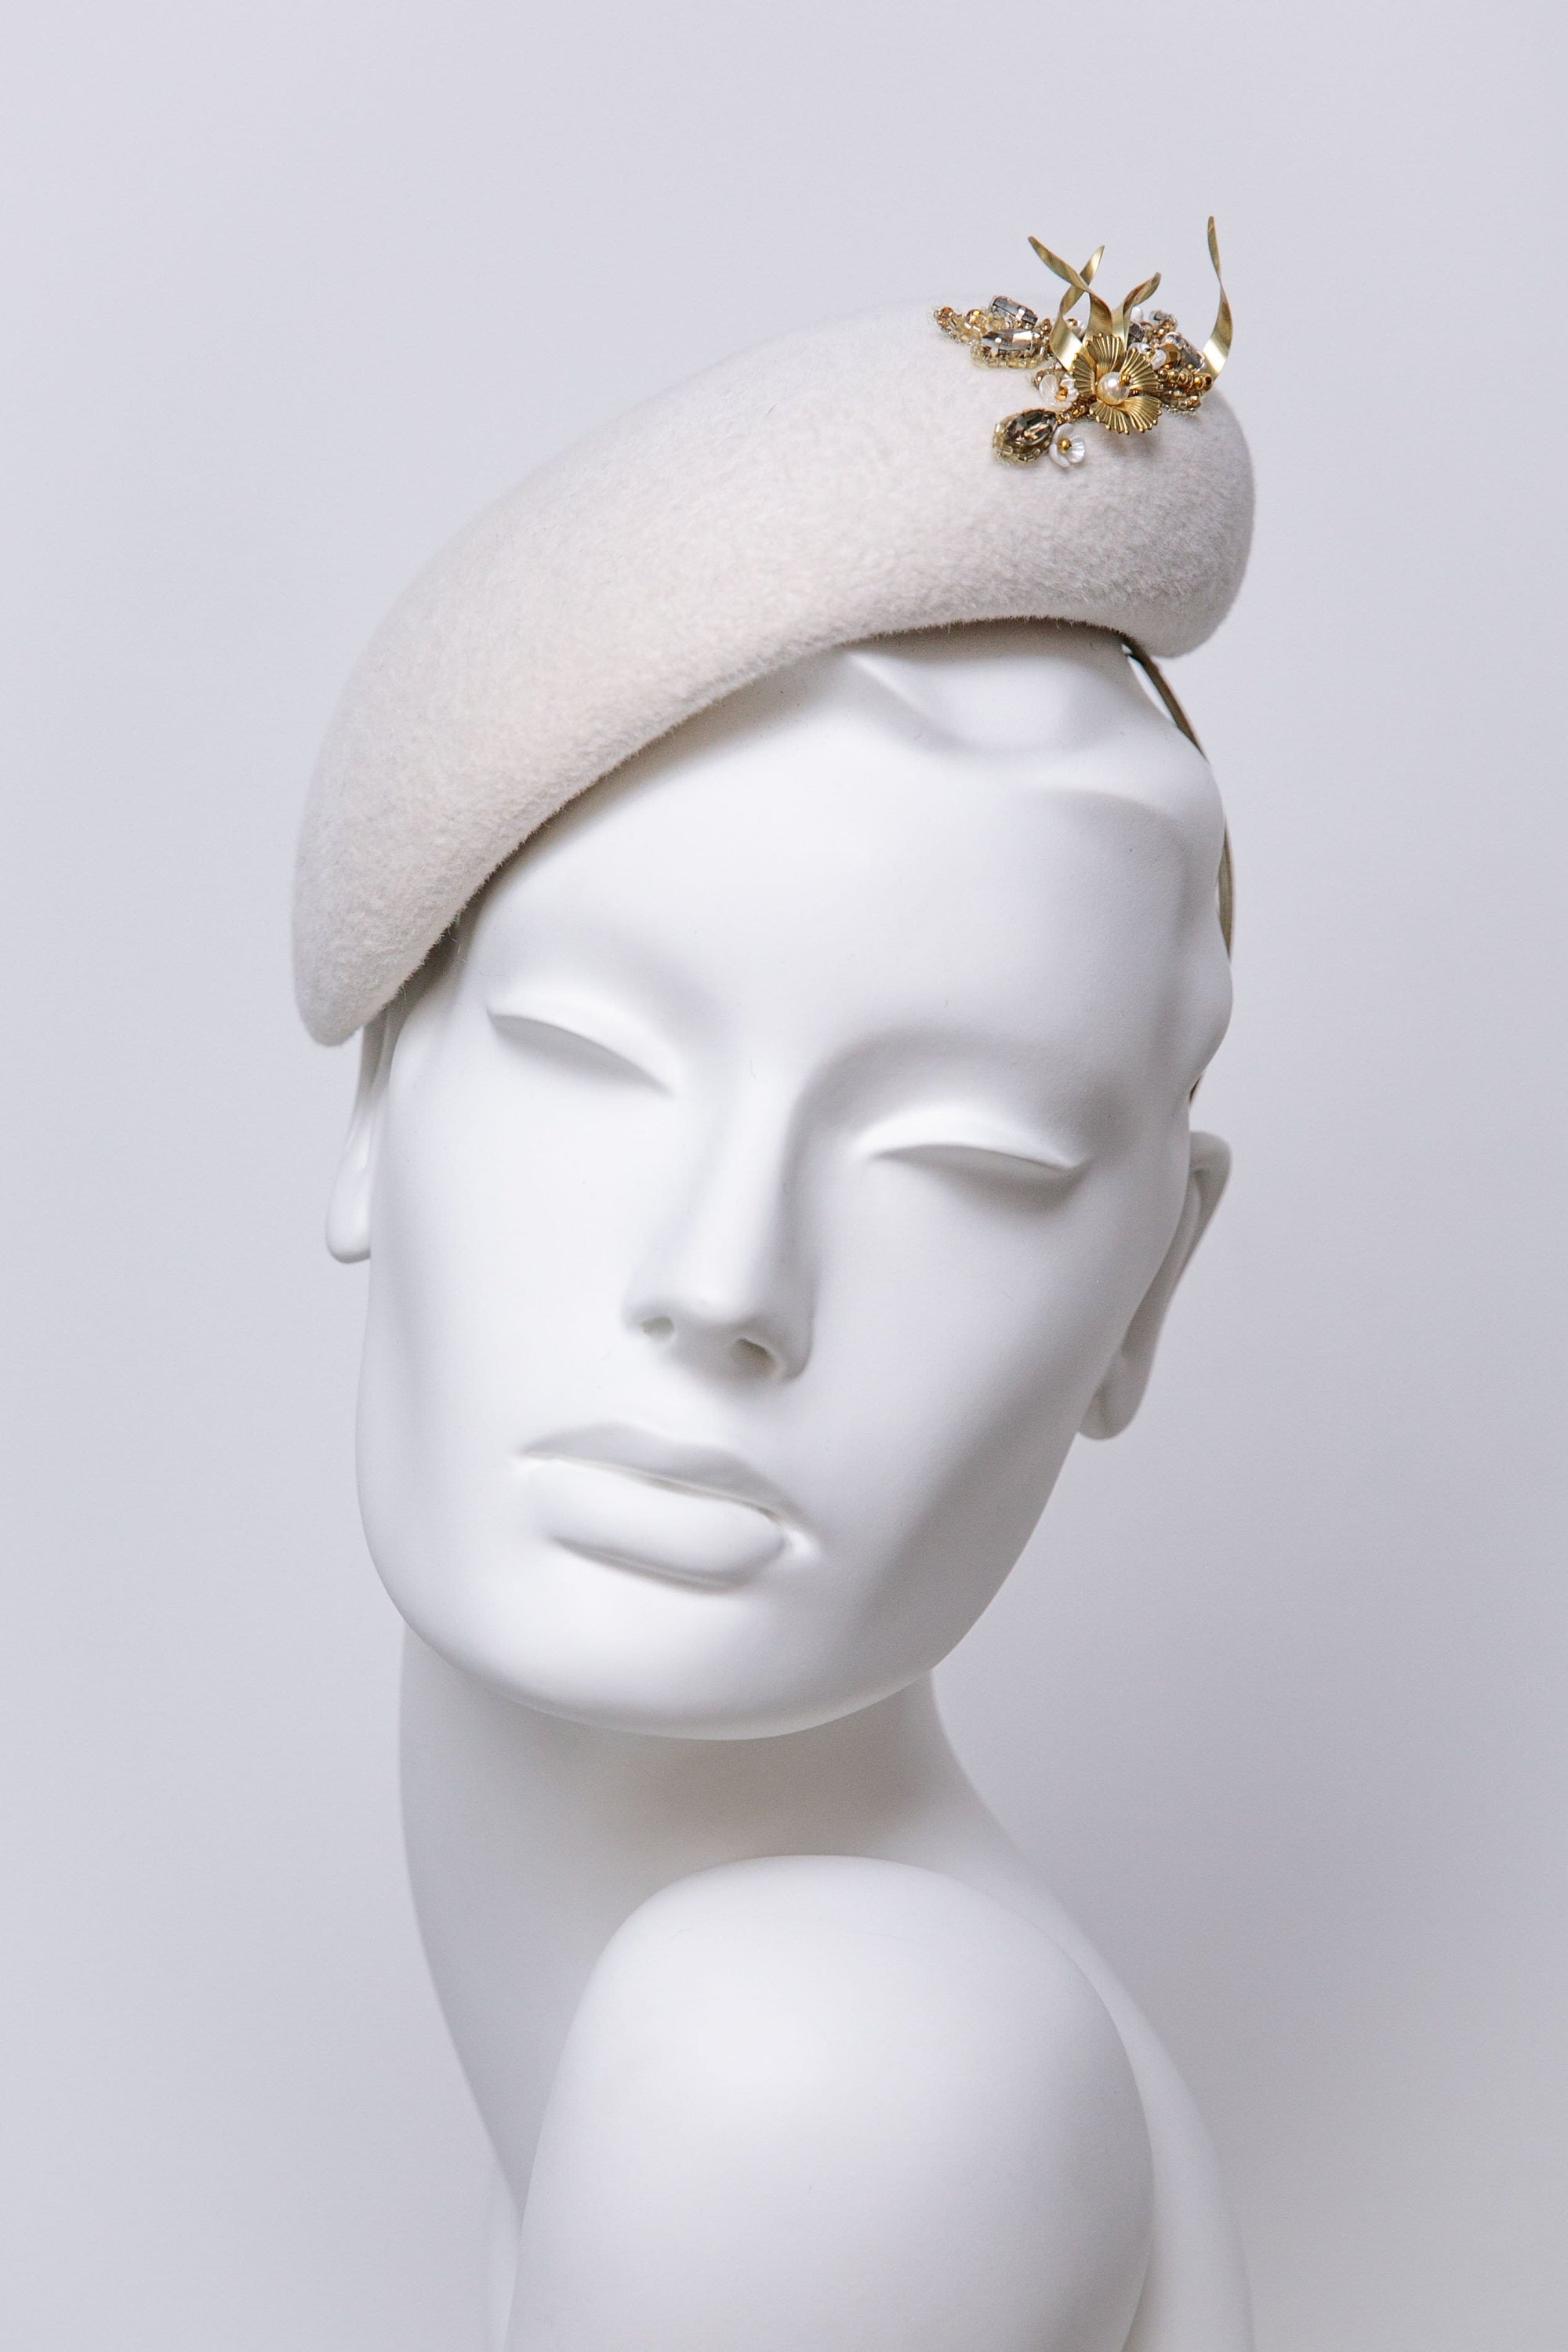 Bridal Perch Hat - Lila - Maggie Mowbray Millinery